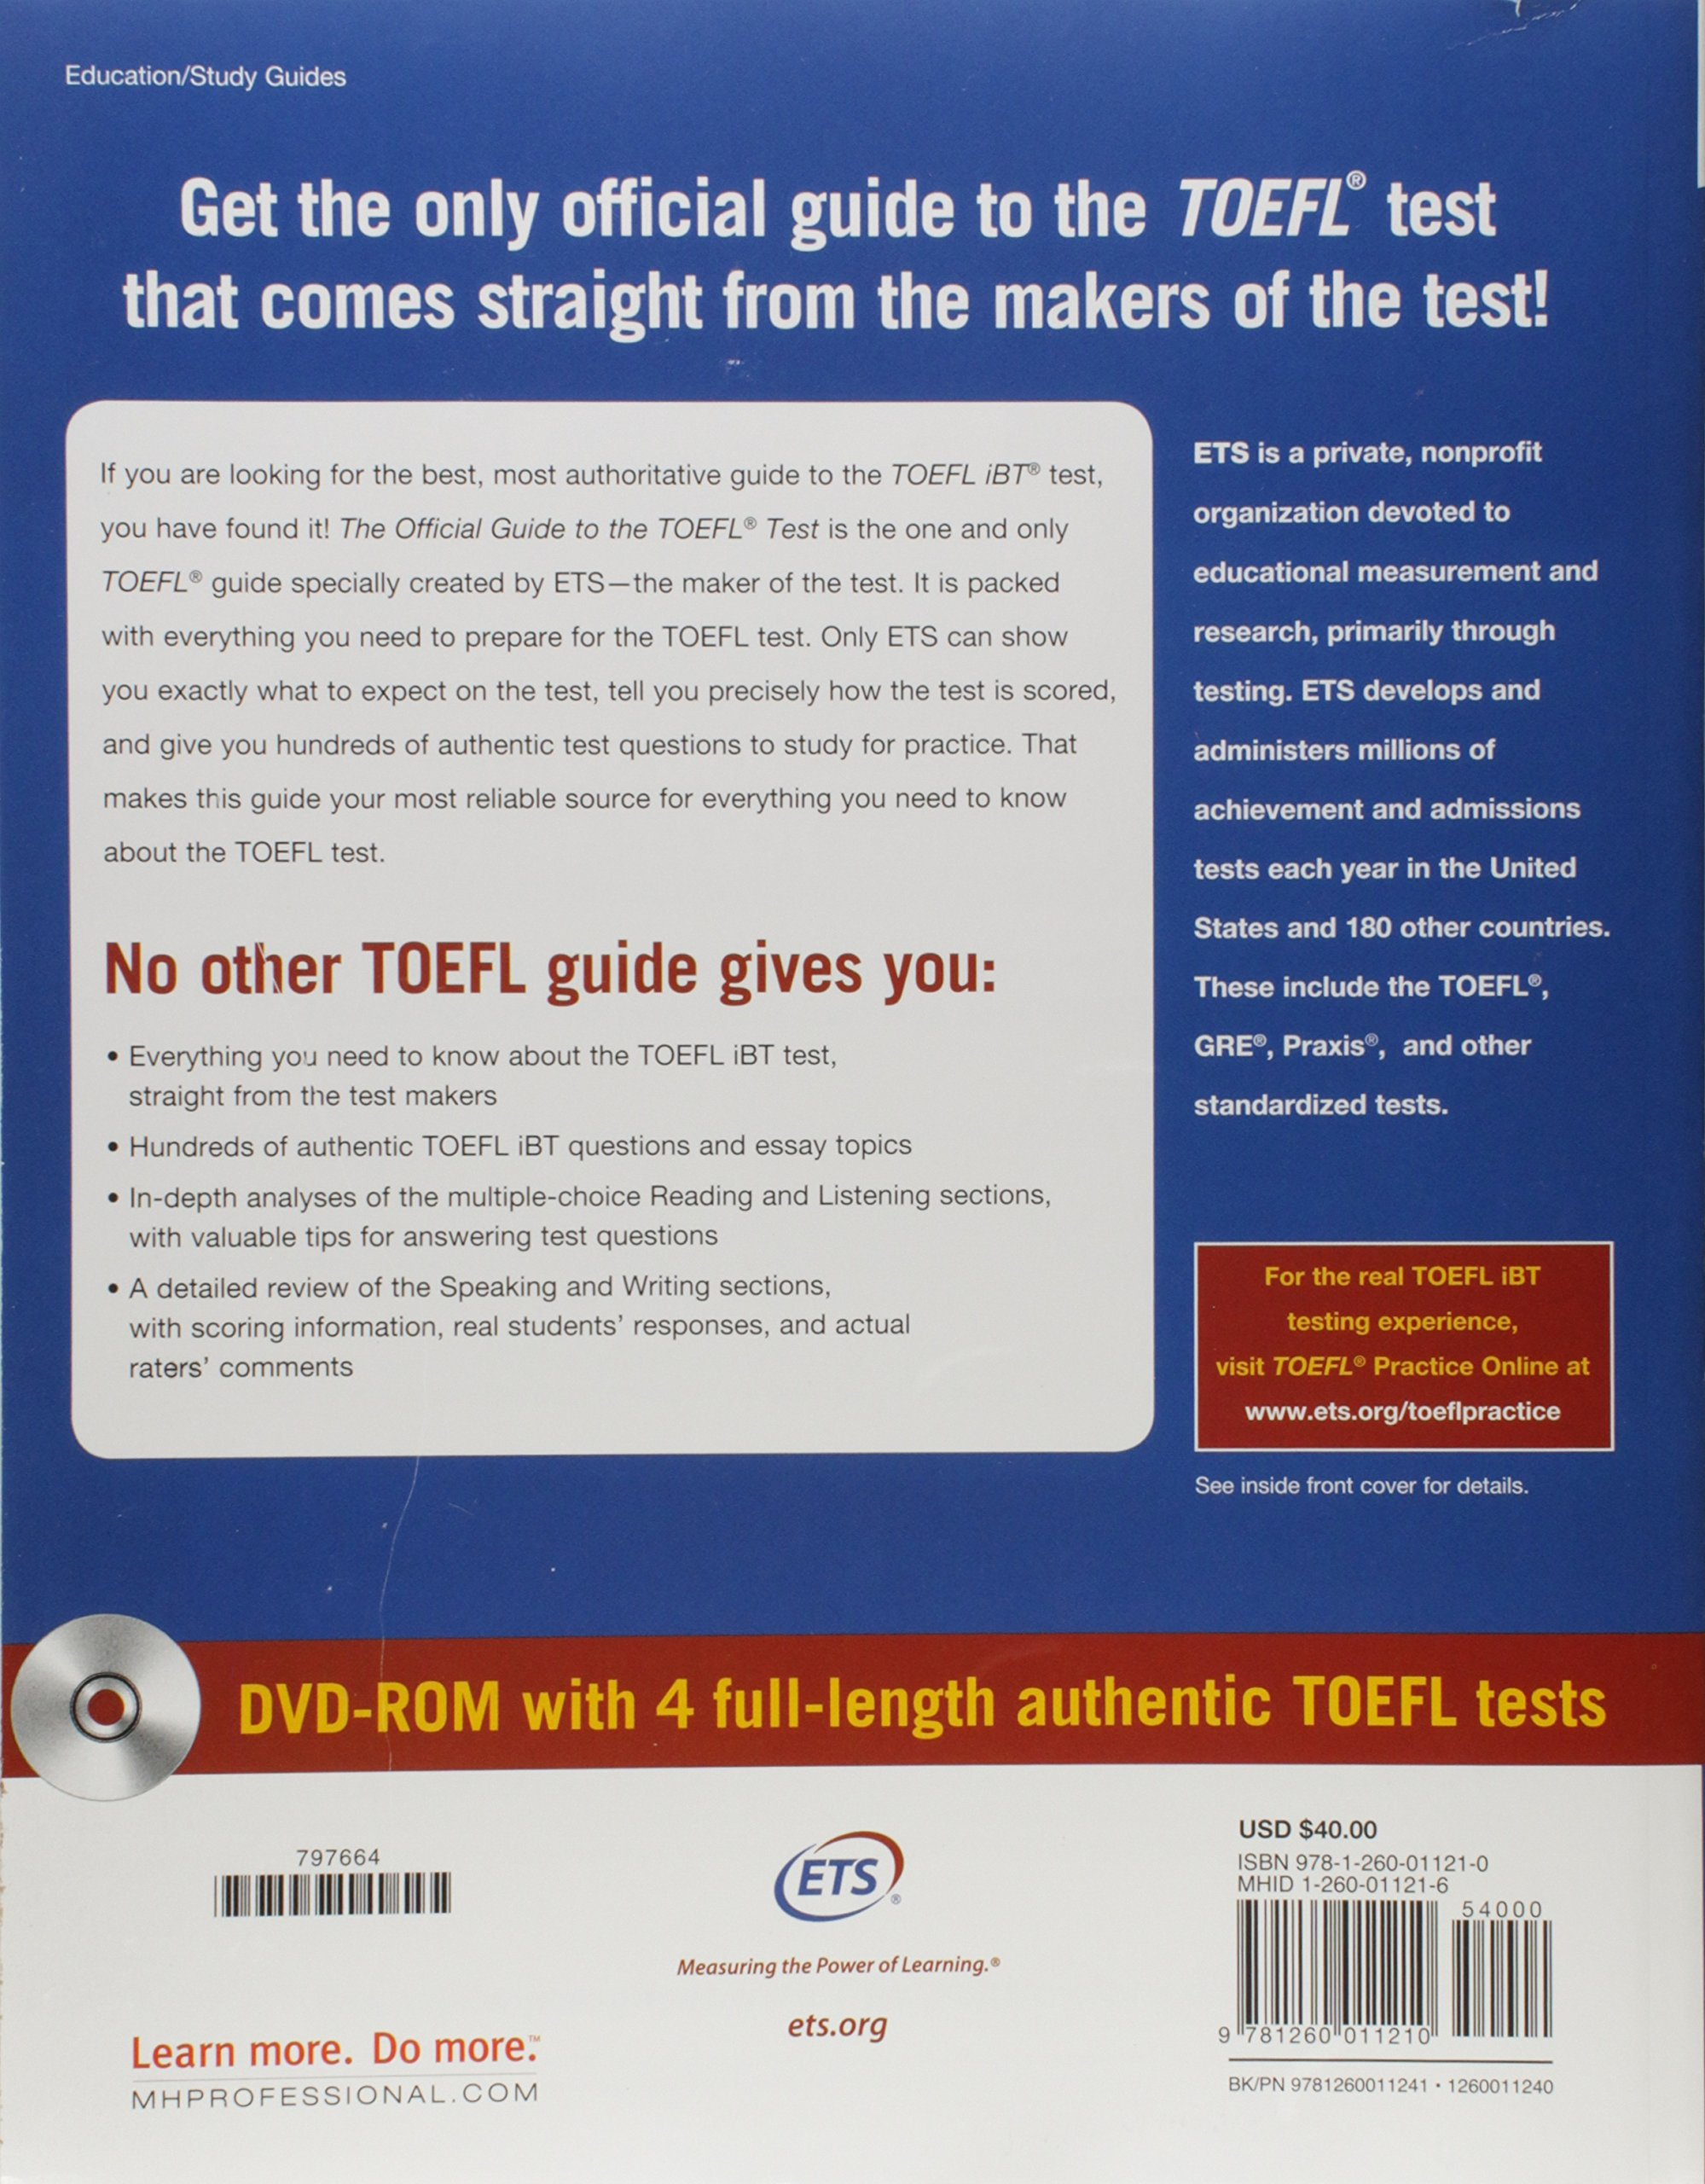 The Official Guide to the TOEFL Test with DVD-ROM, Fifth Edition by McGraw-Hill Education